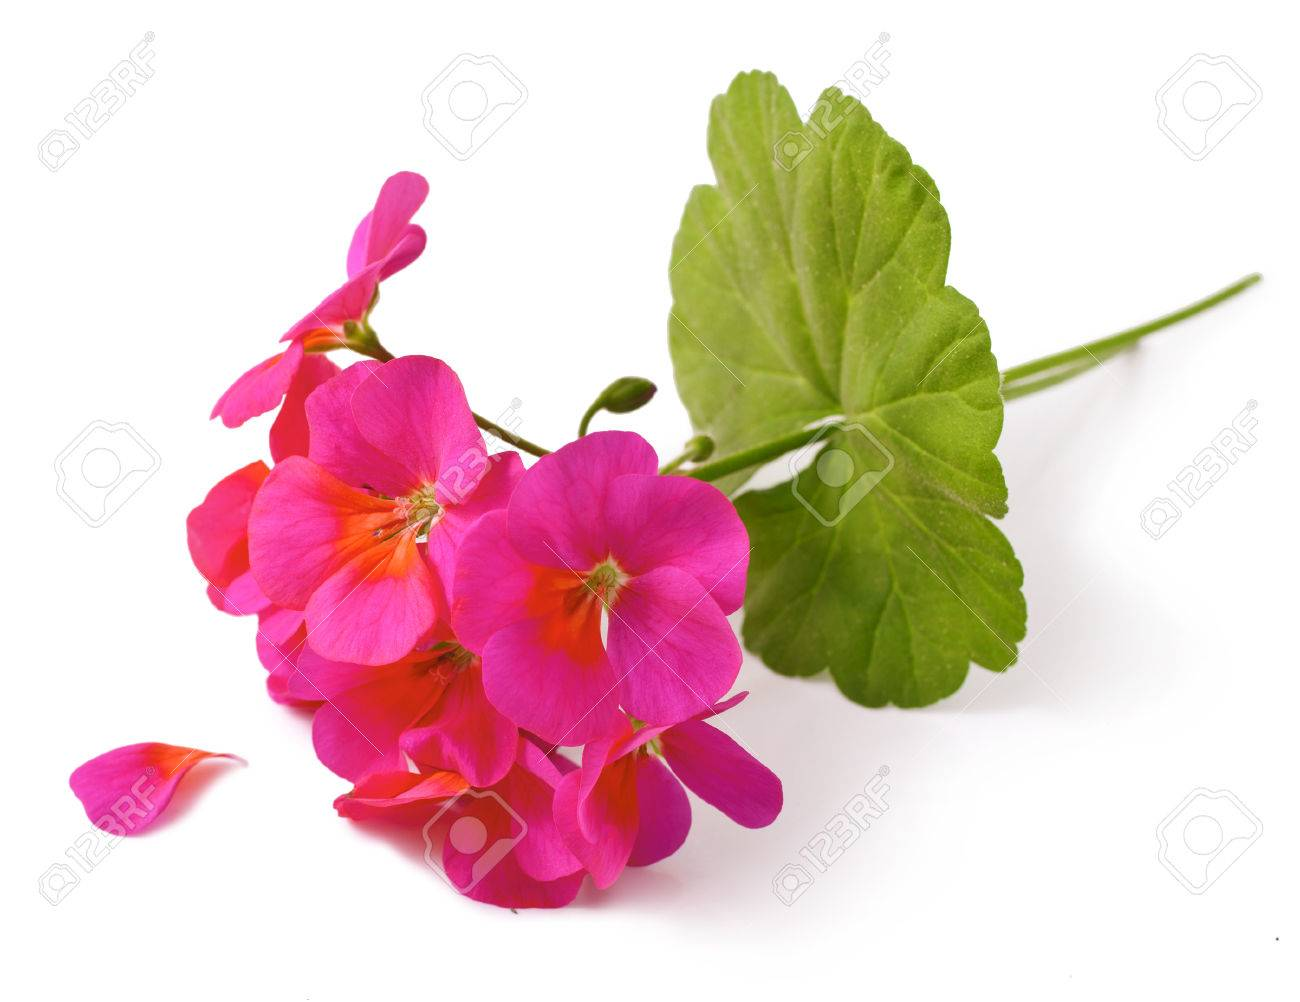 Geranium Pelargonium Flowers On White Background Stock Photo